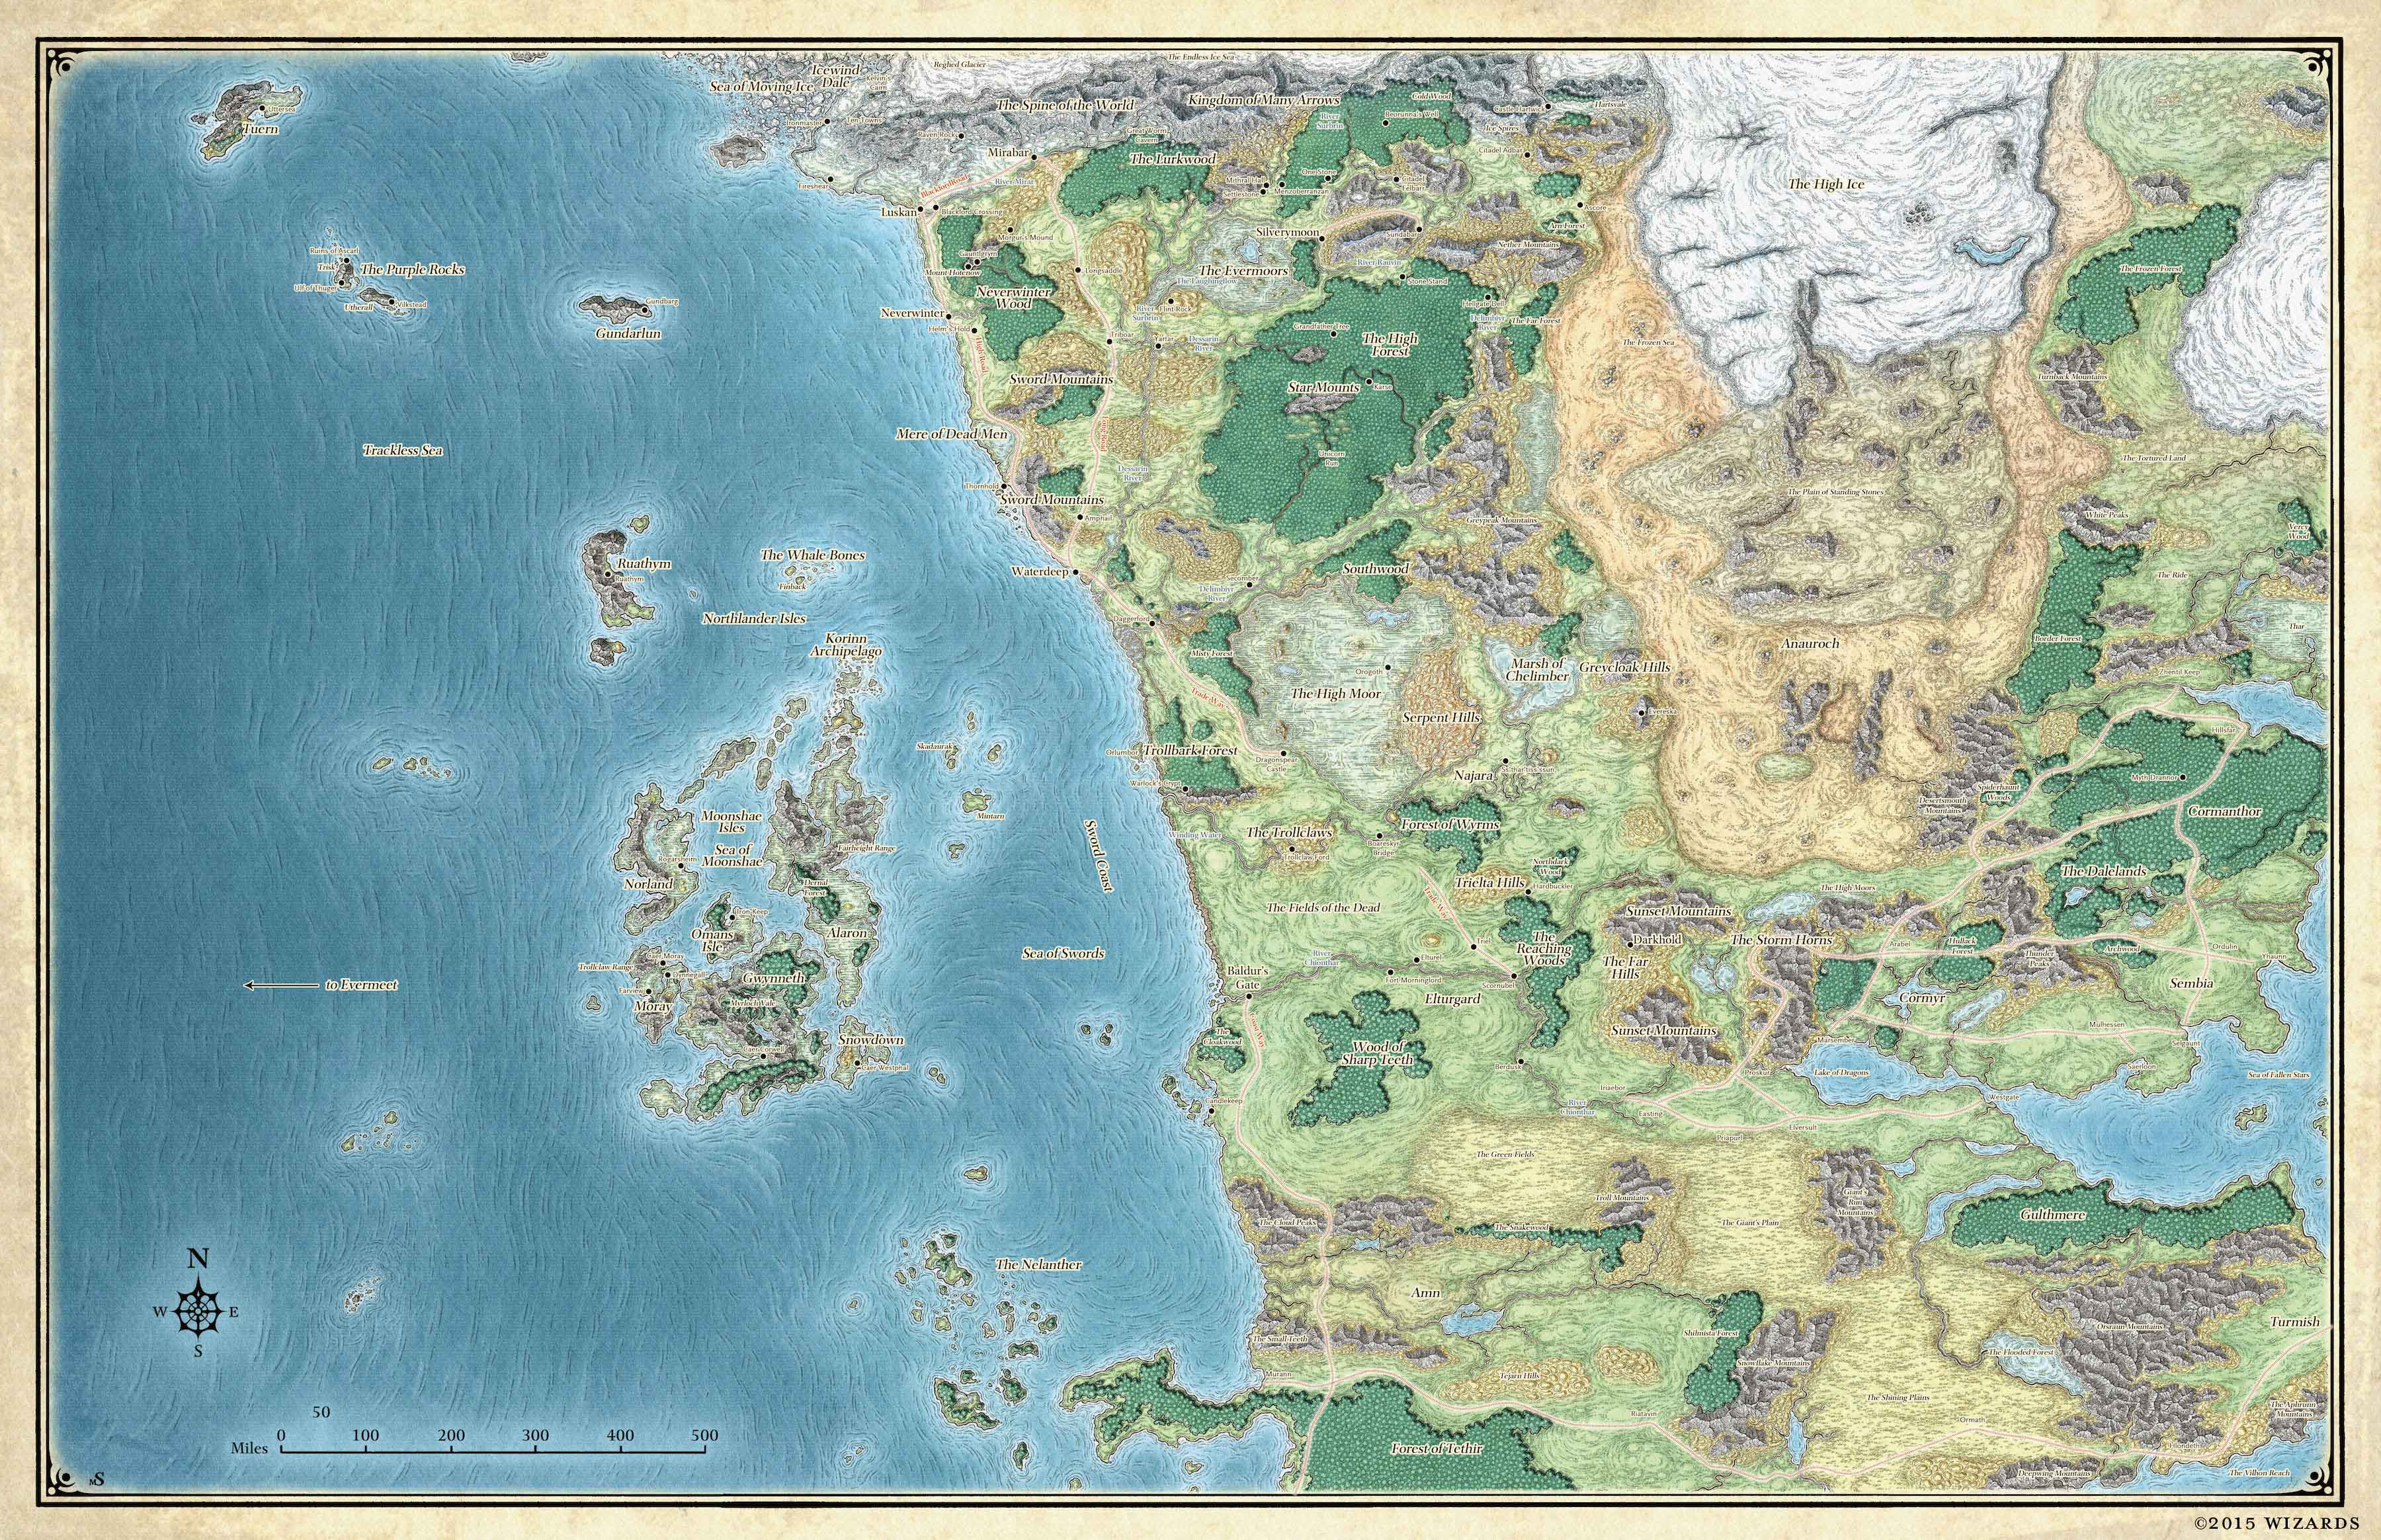 Map of Faerun, one of the official Dungeons and Dragons worlds. Copyright Wizards of the Coast